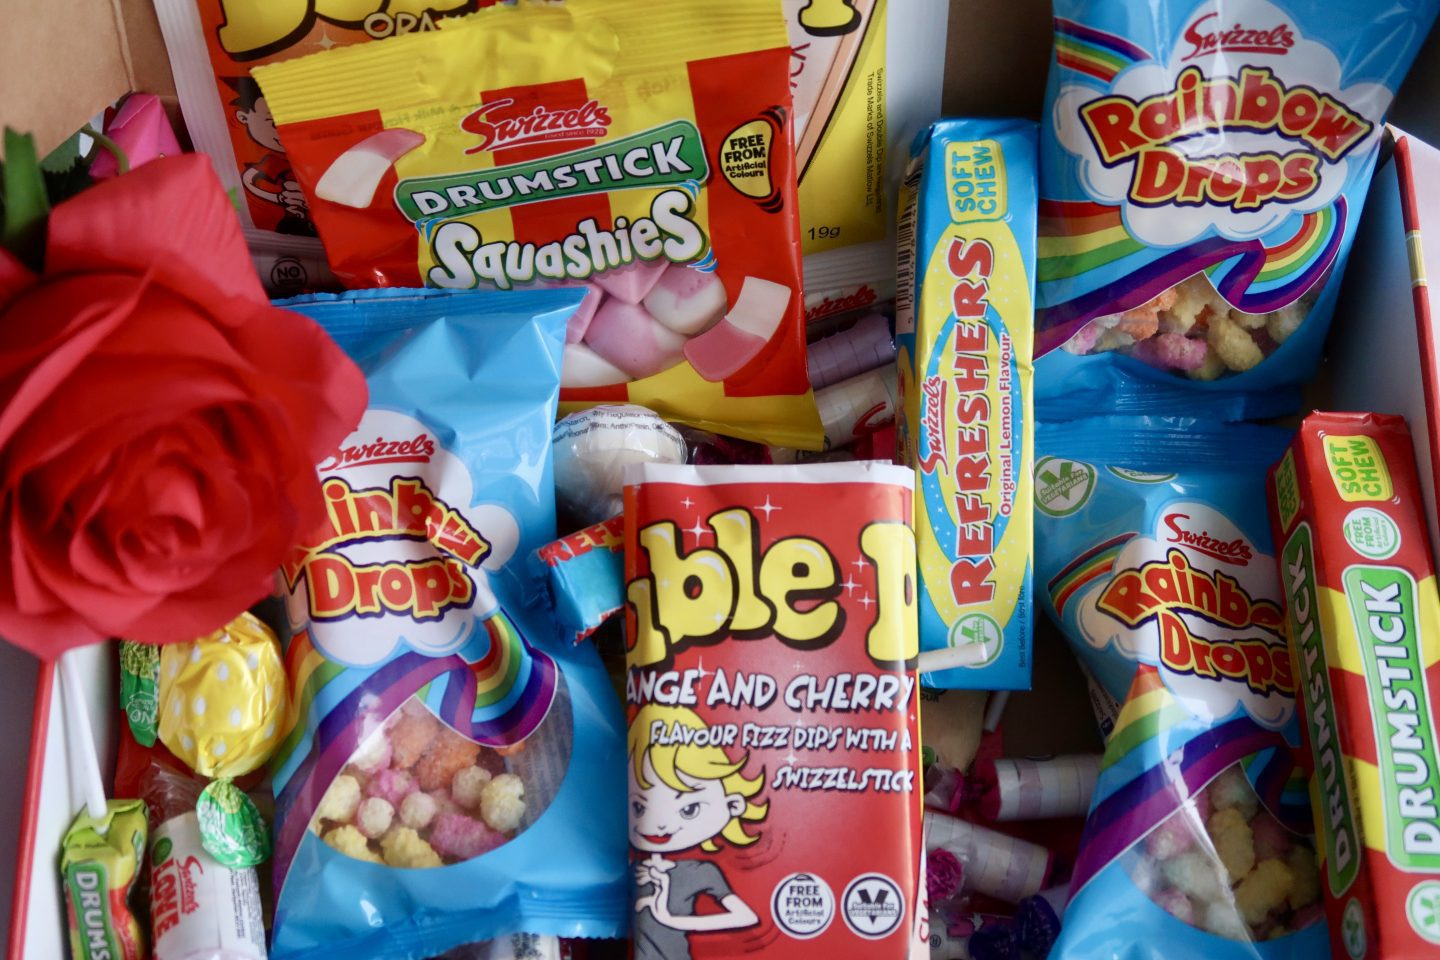 A hamper of retro sweets. Dib Dabs, Rainbow Drops, lollys and more.